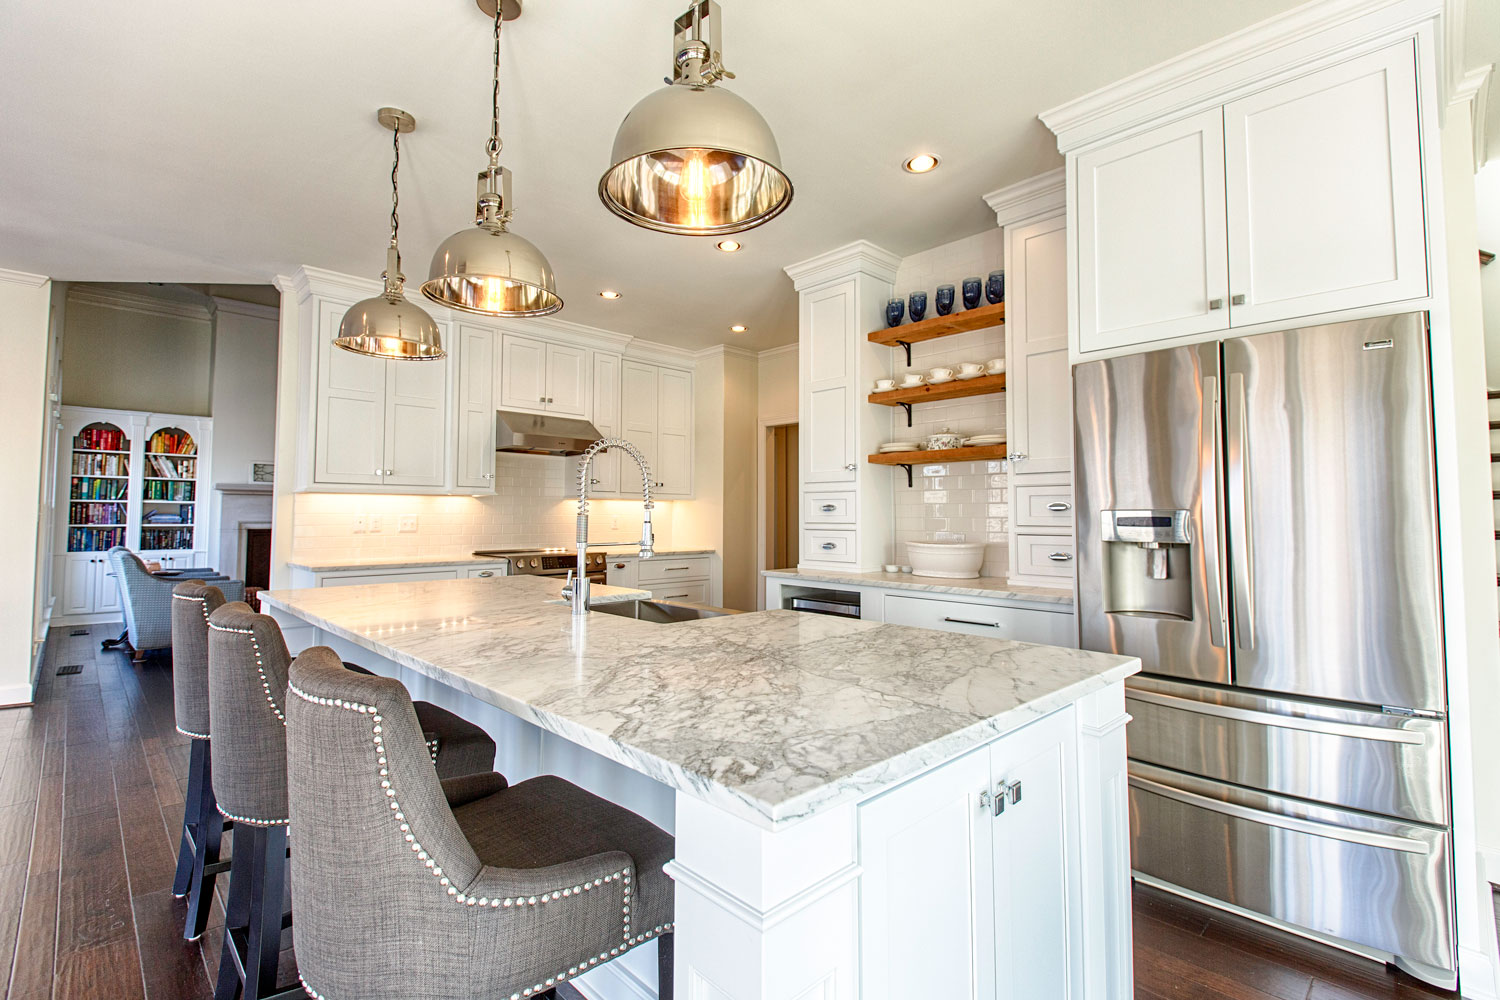 Open Kitchen Shelving Tips When Remodeling